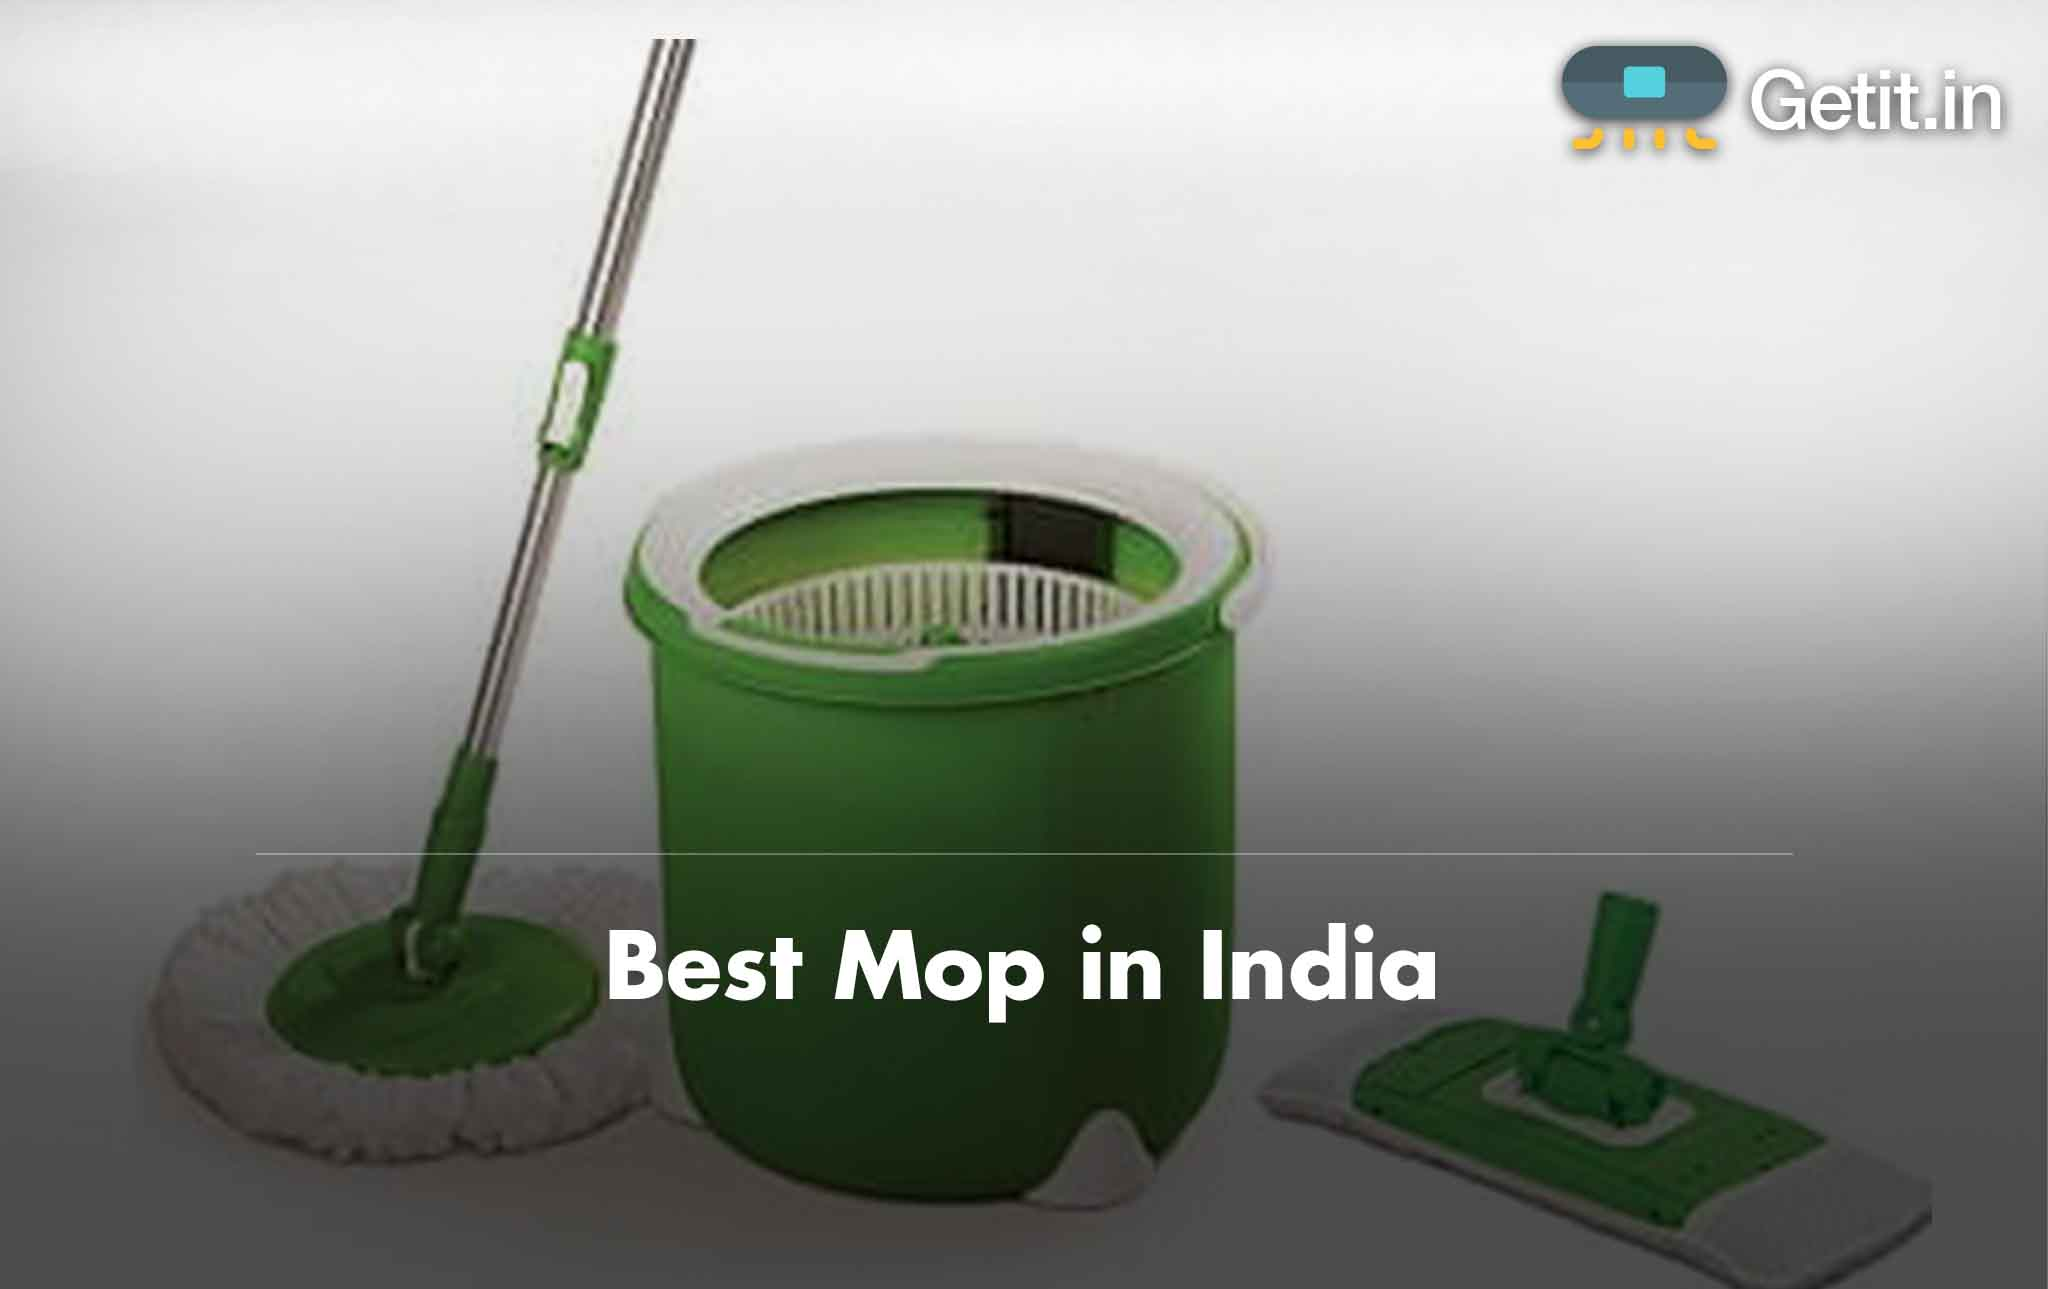 Best Mop in India